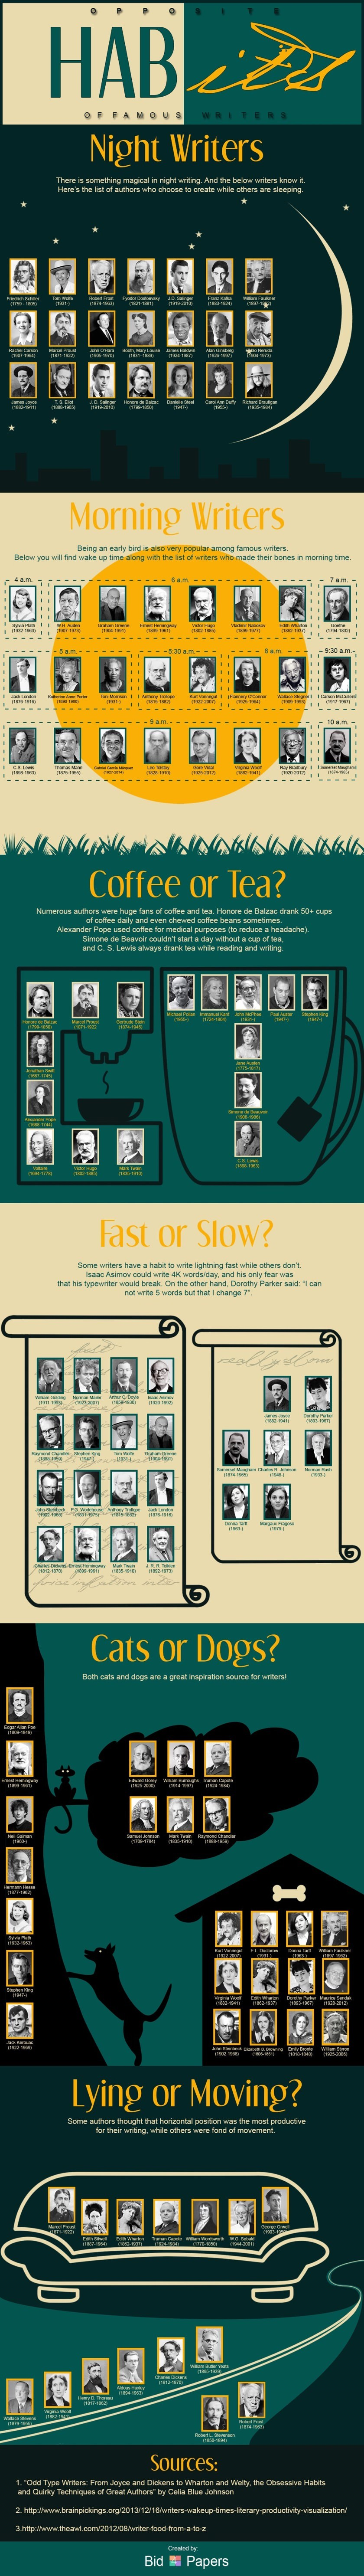 Daily habits of 100 famous witers - infographic